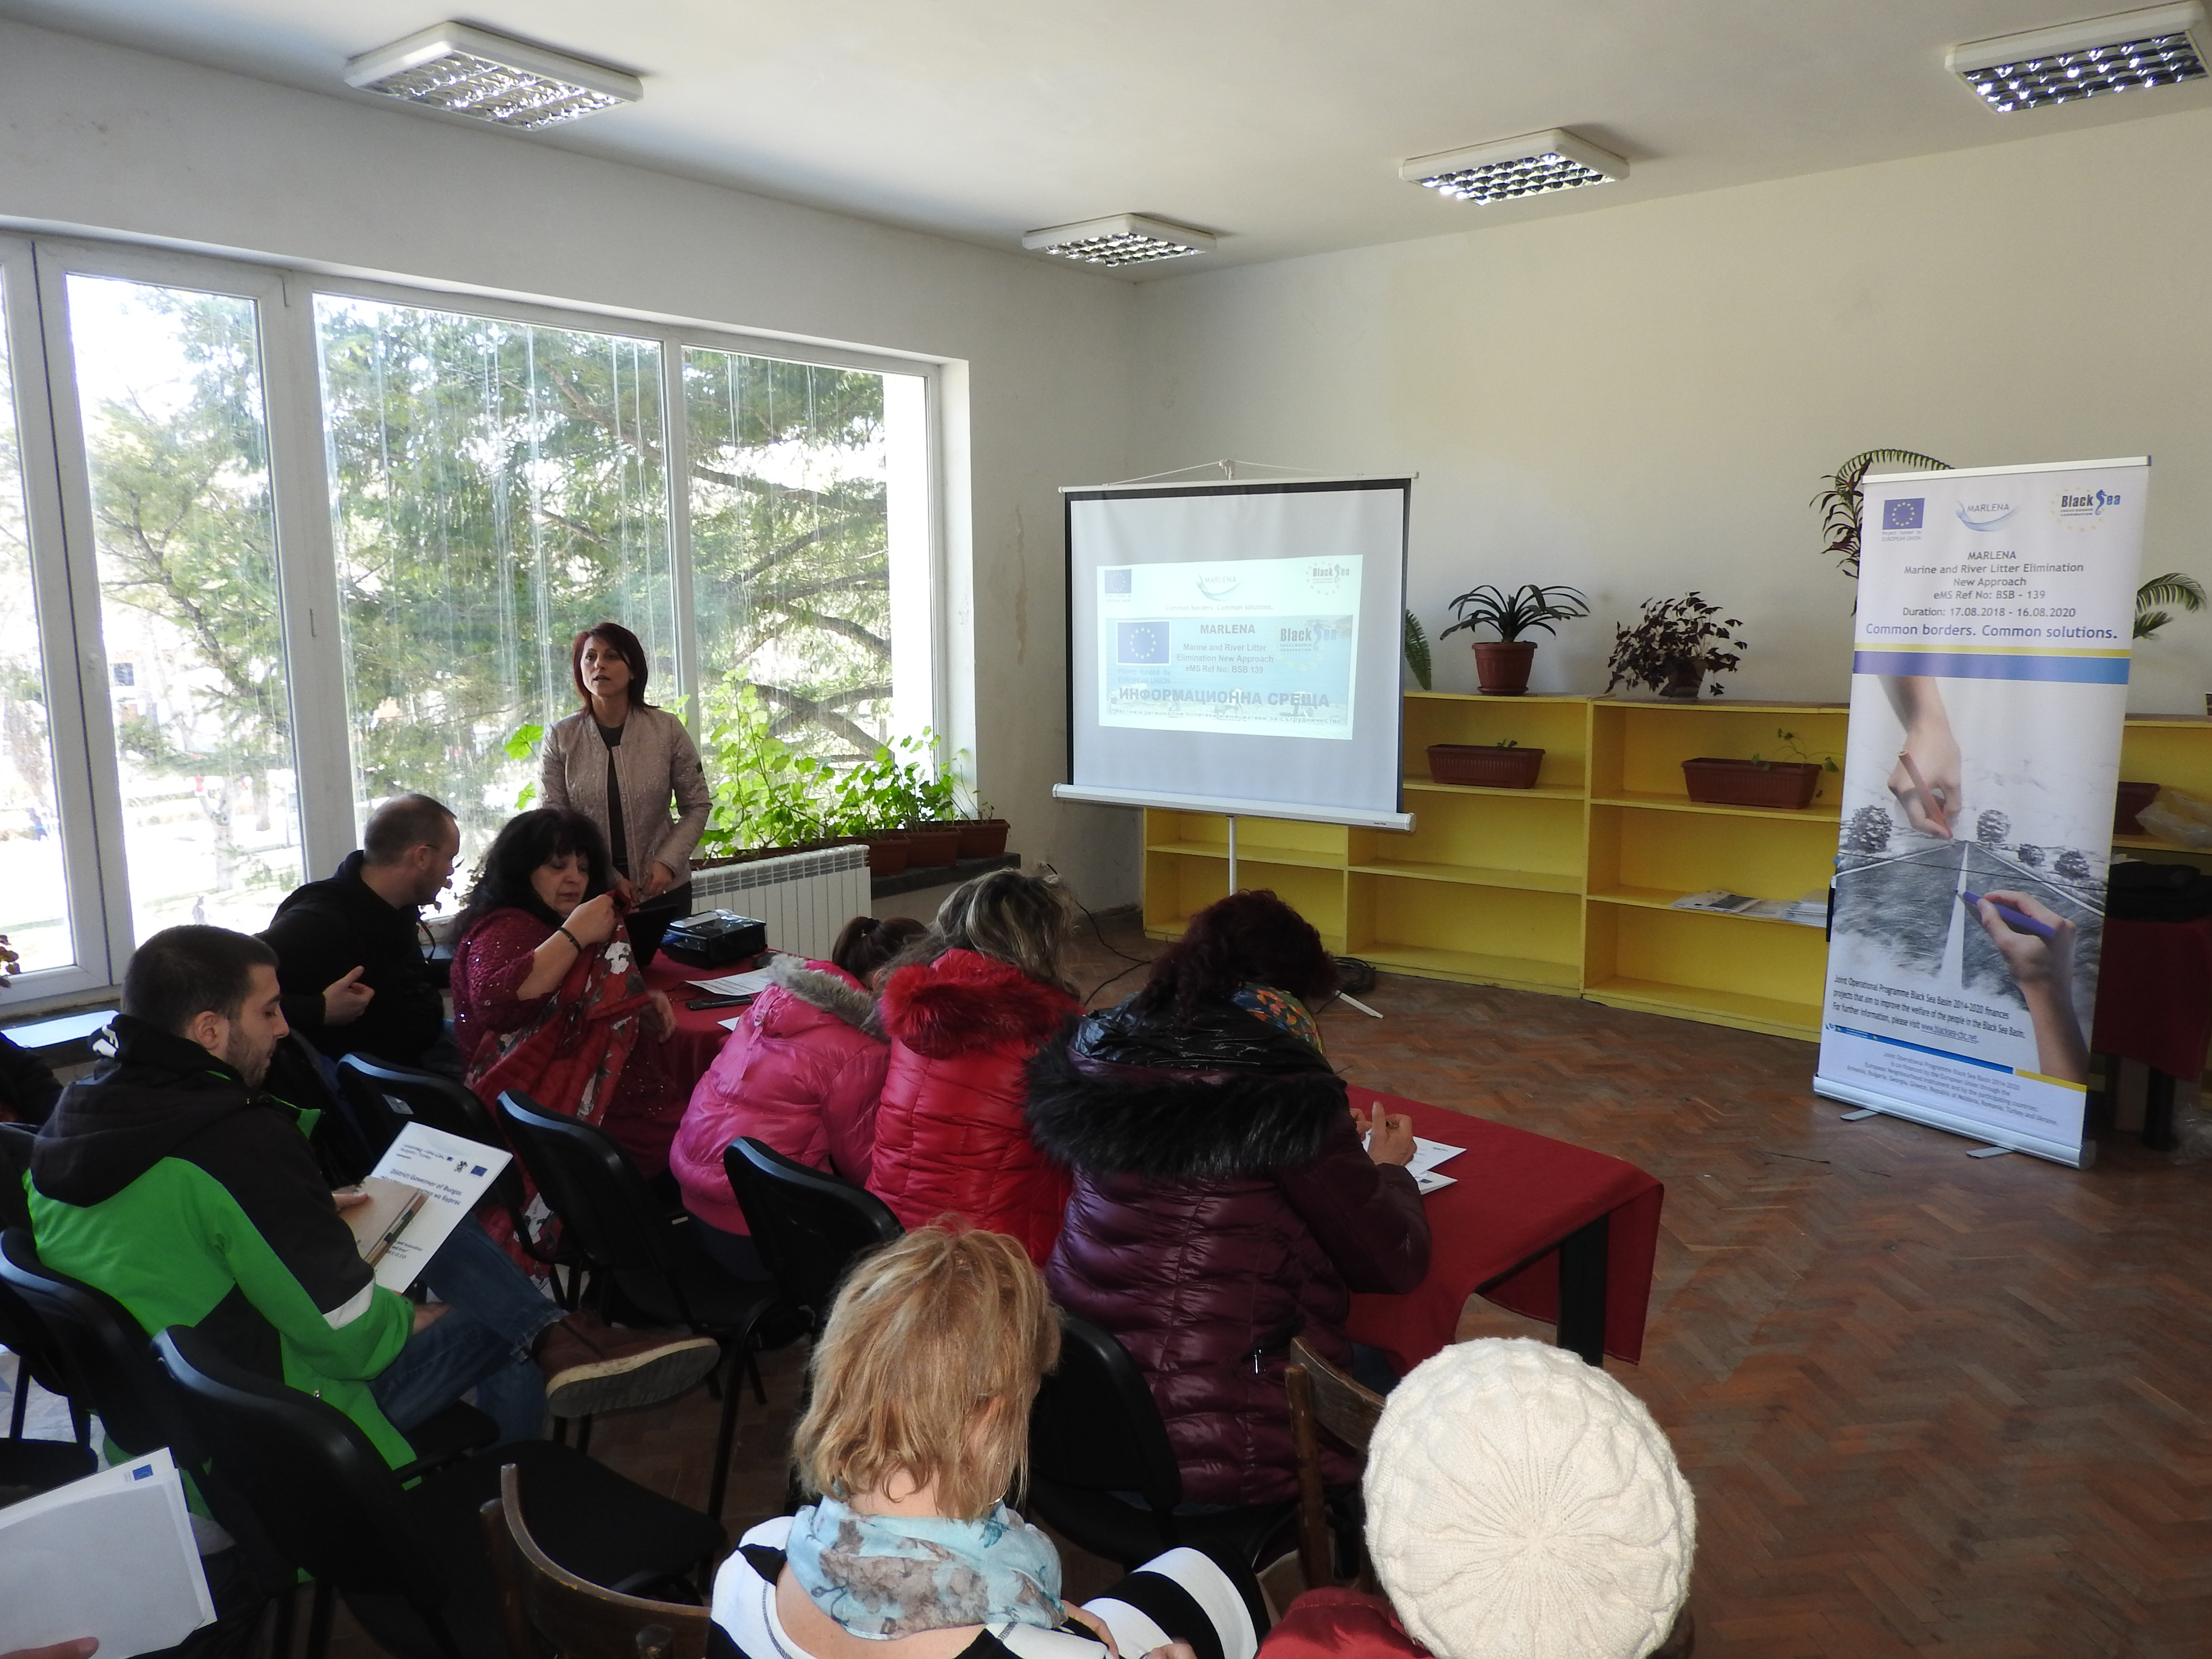 Information meeting with stakeholders was held in Malko Tarnovo